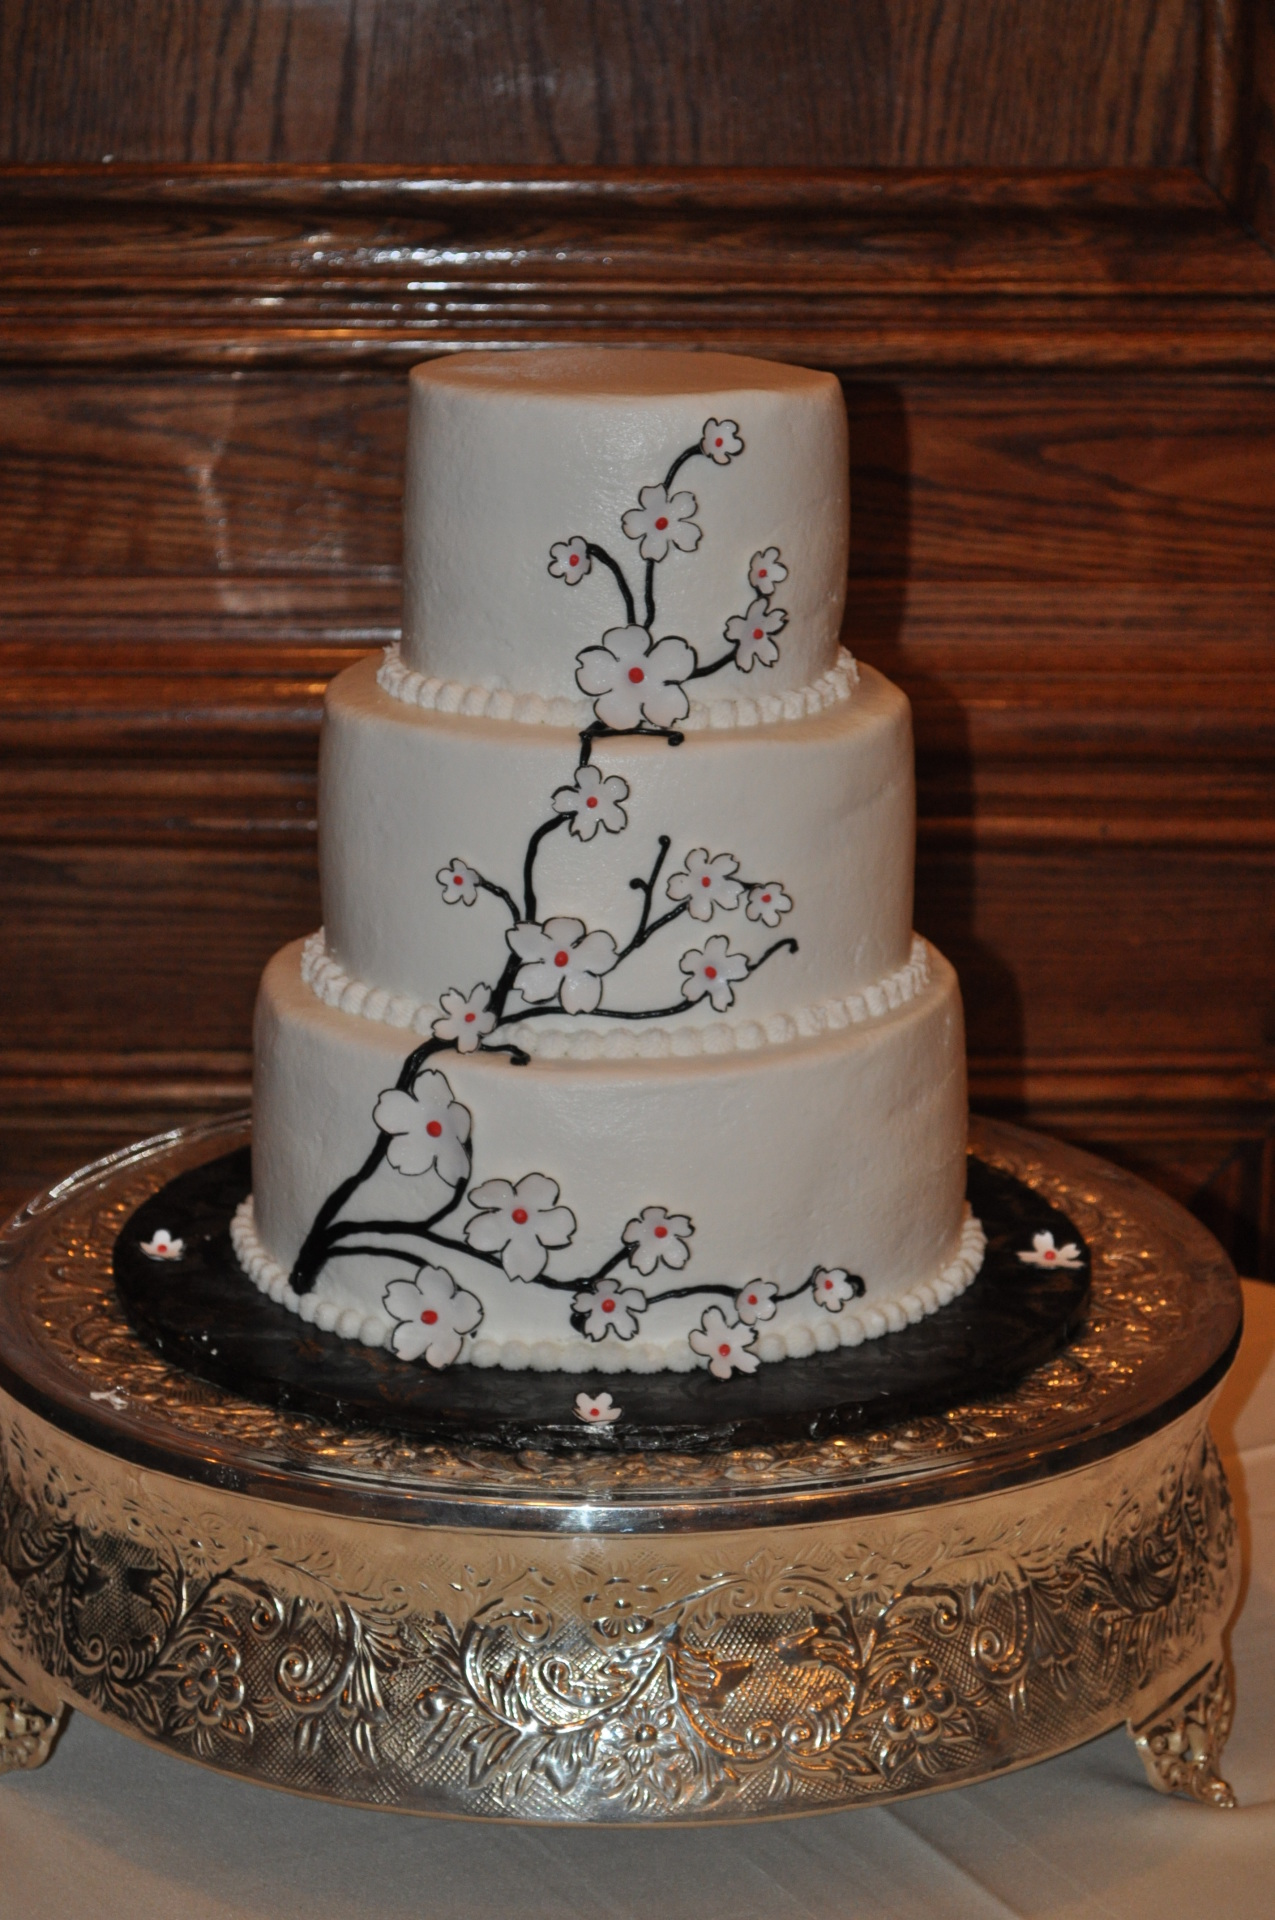 Simple 3 tiers with black and white cutout flowers